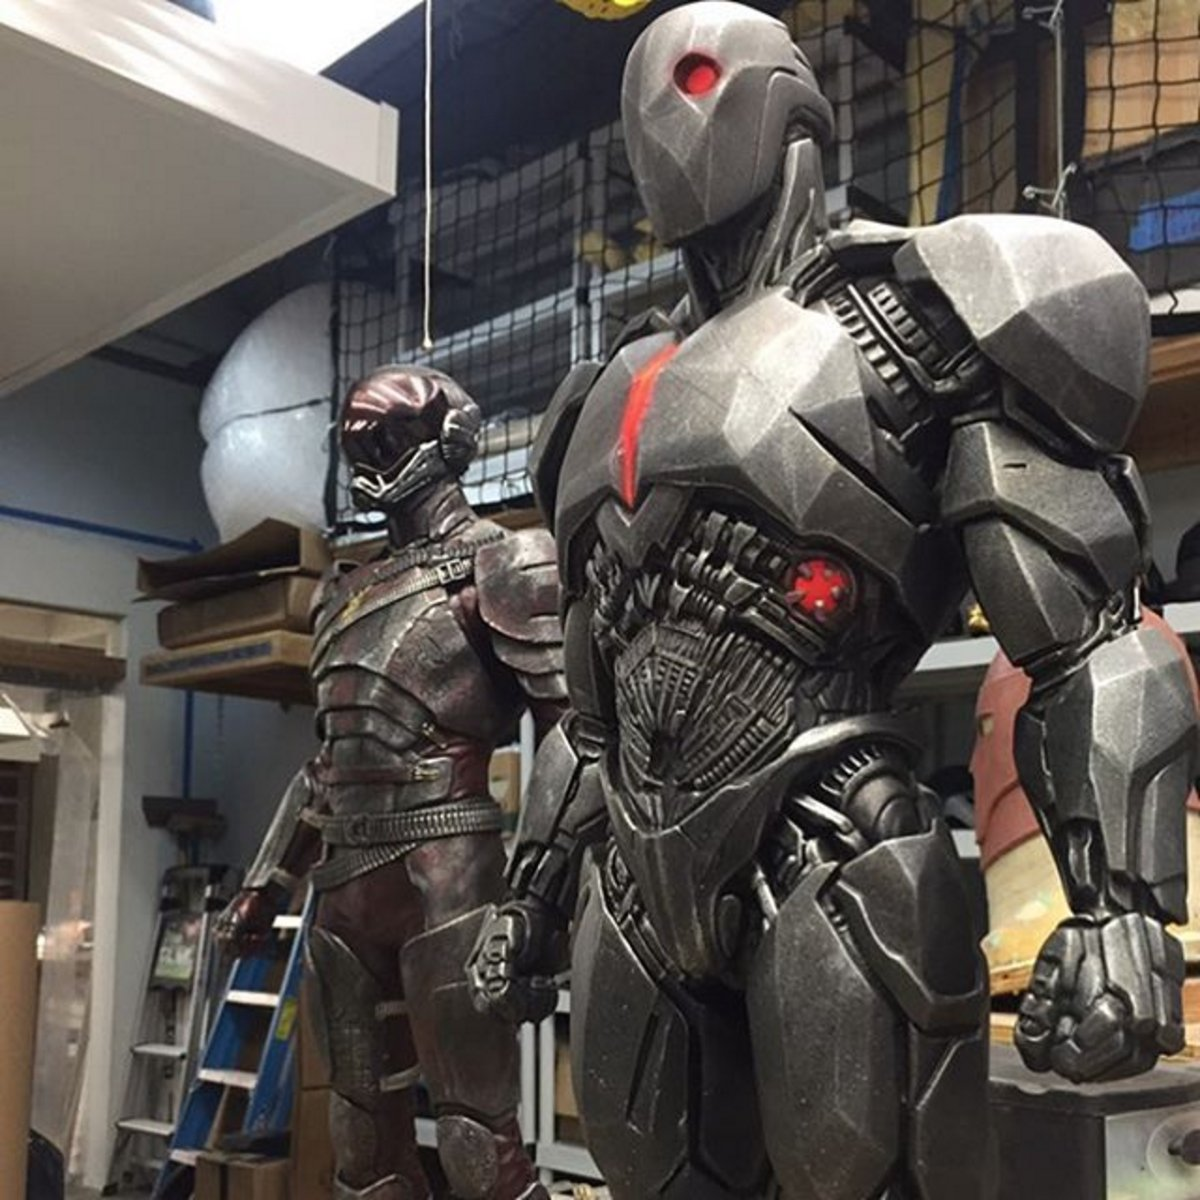 The Flash and Cyborg battlesuits